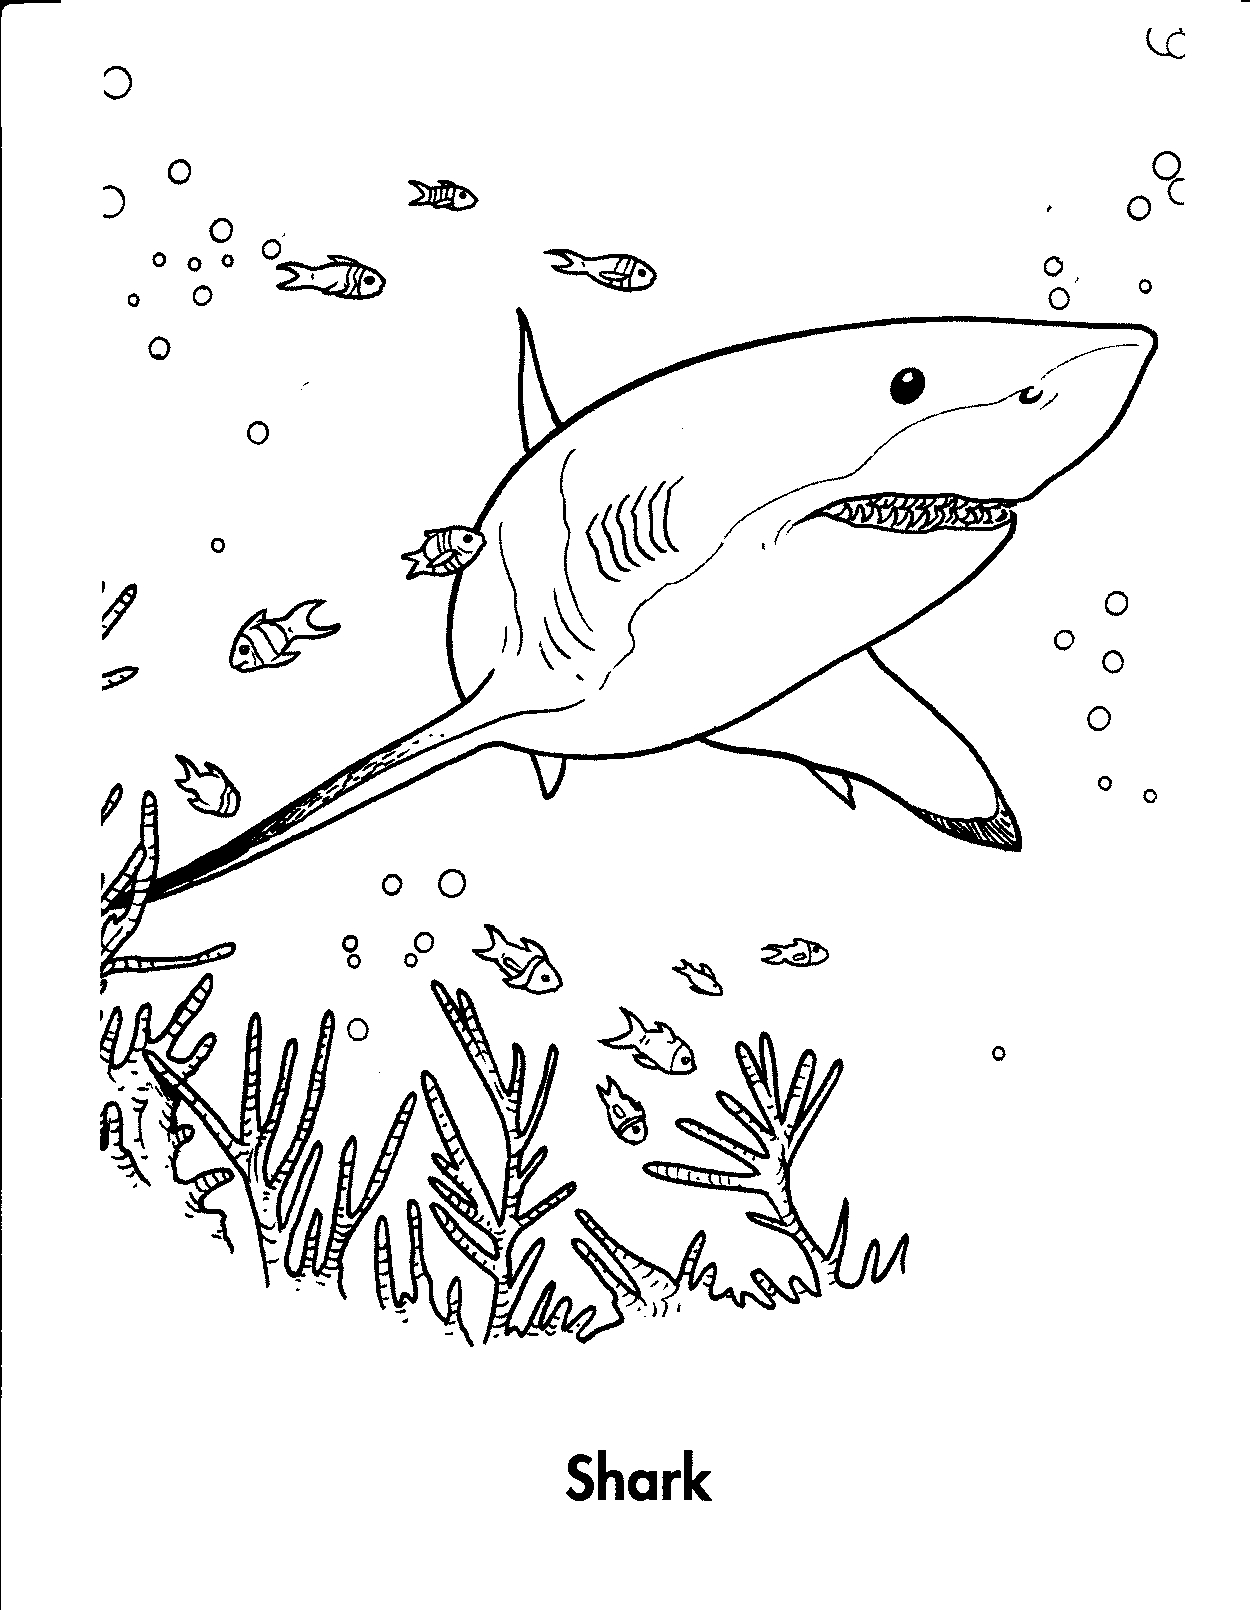 image relating to Shark Coloring Pages Printable called Free of charge Printable Shark Coloring Webpages For Small children